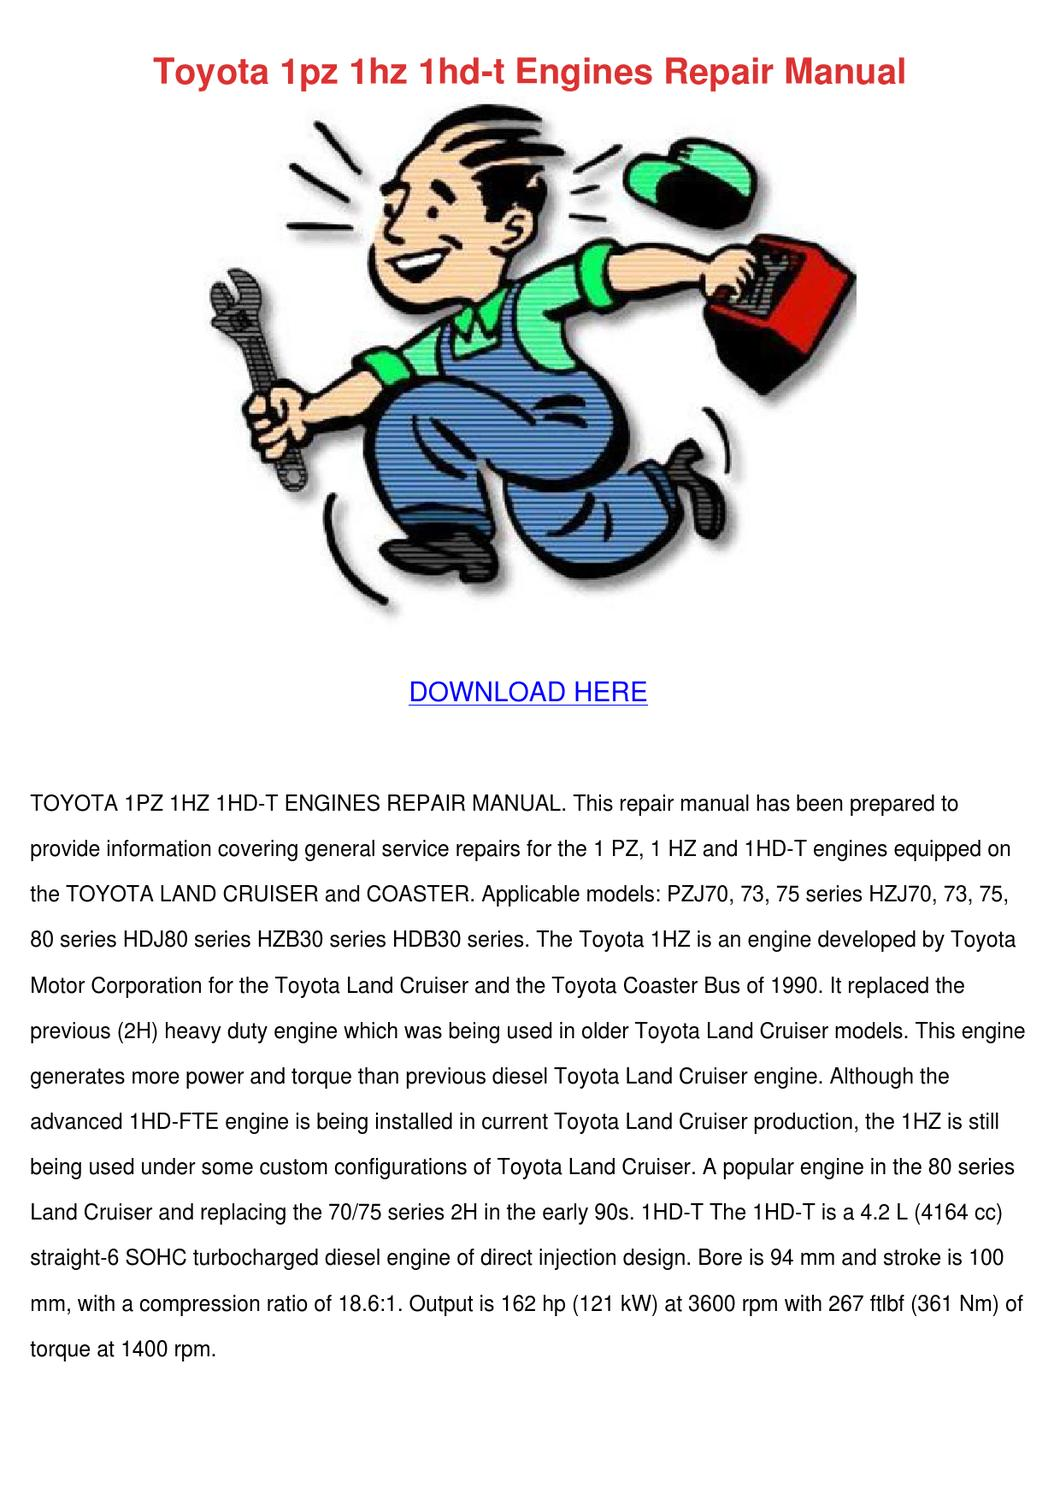 Toyota 1pz 1hz 1hd T Engines Repair Manual by Margorie Sarah - issuu